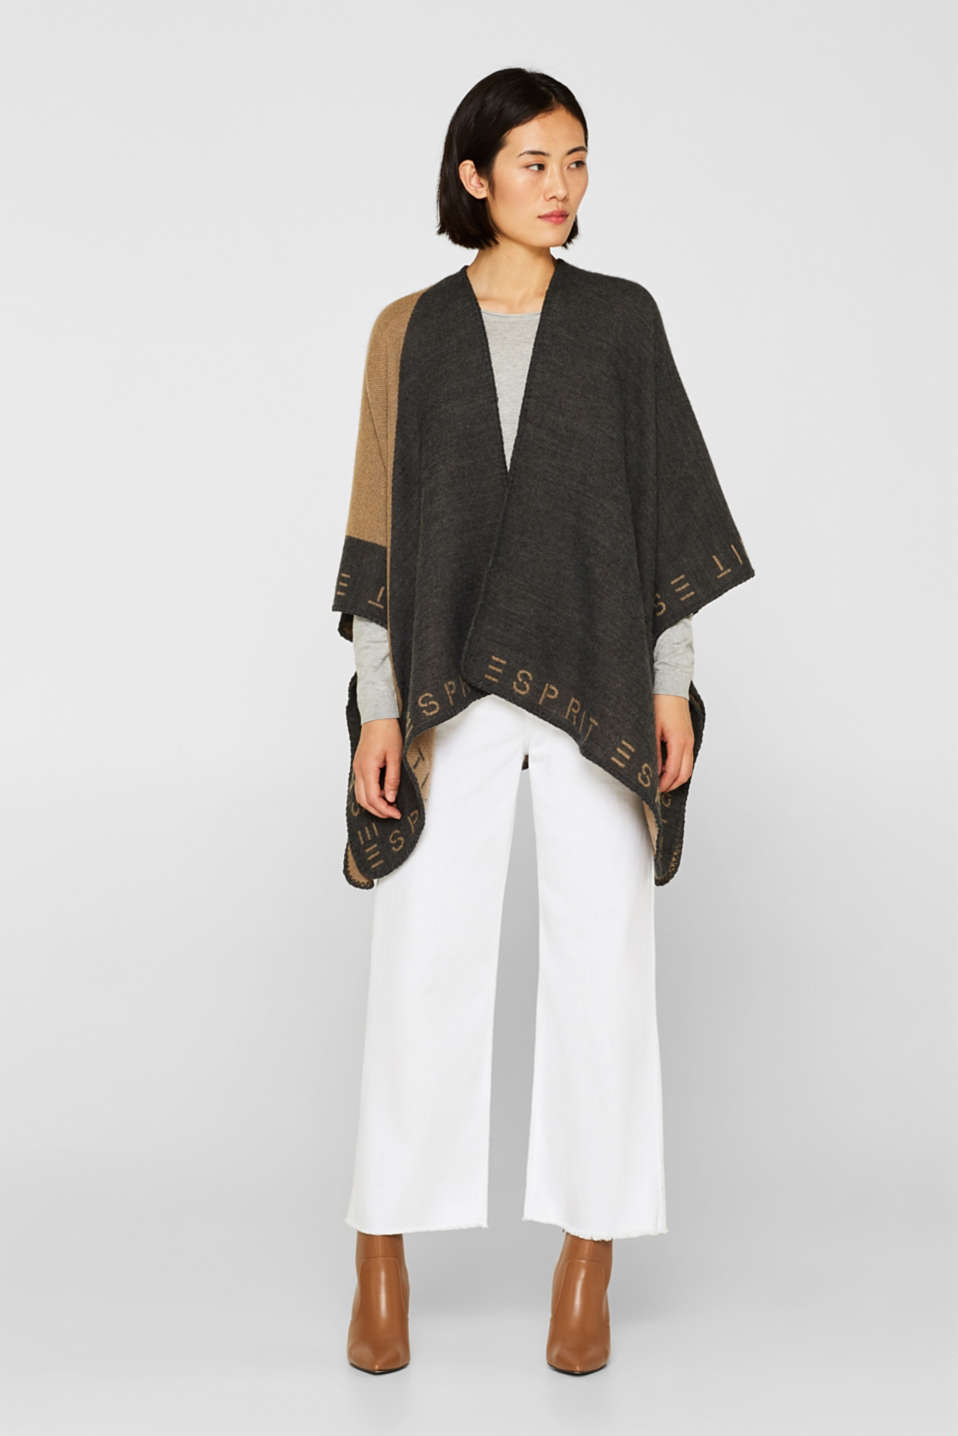 Esprit - Poncho with an interwoven logo